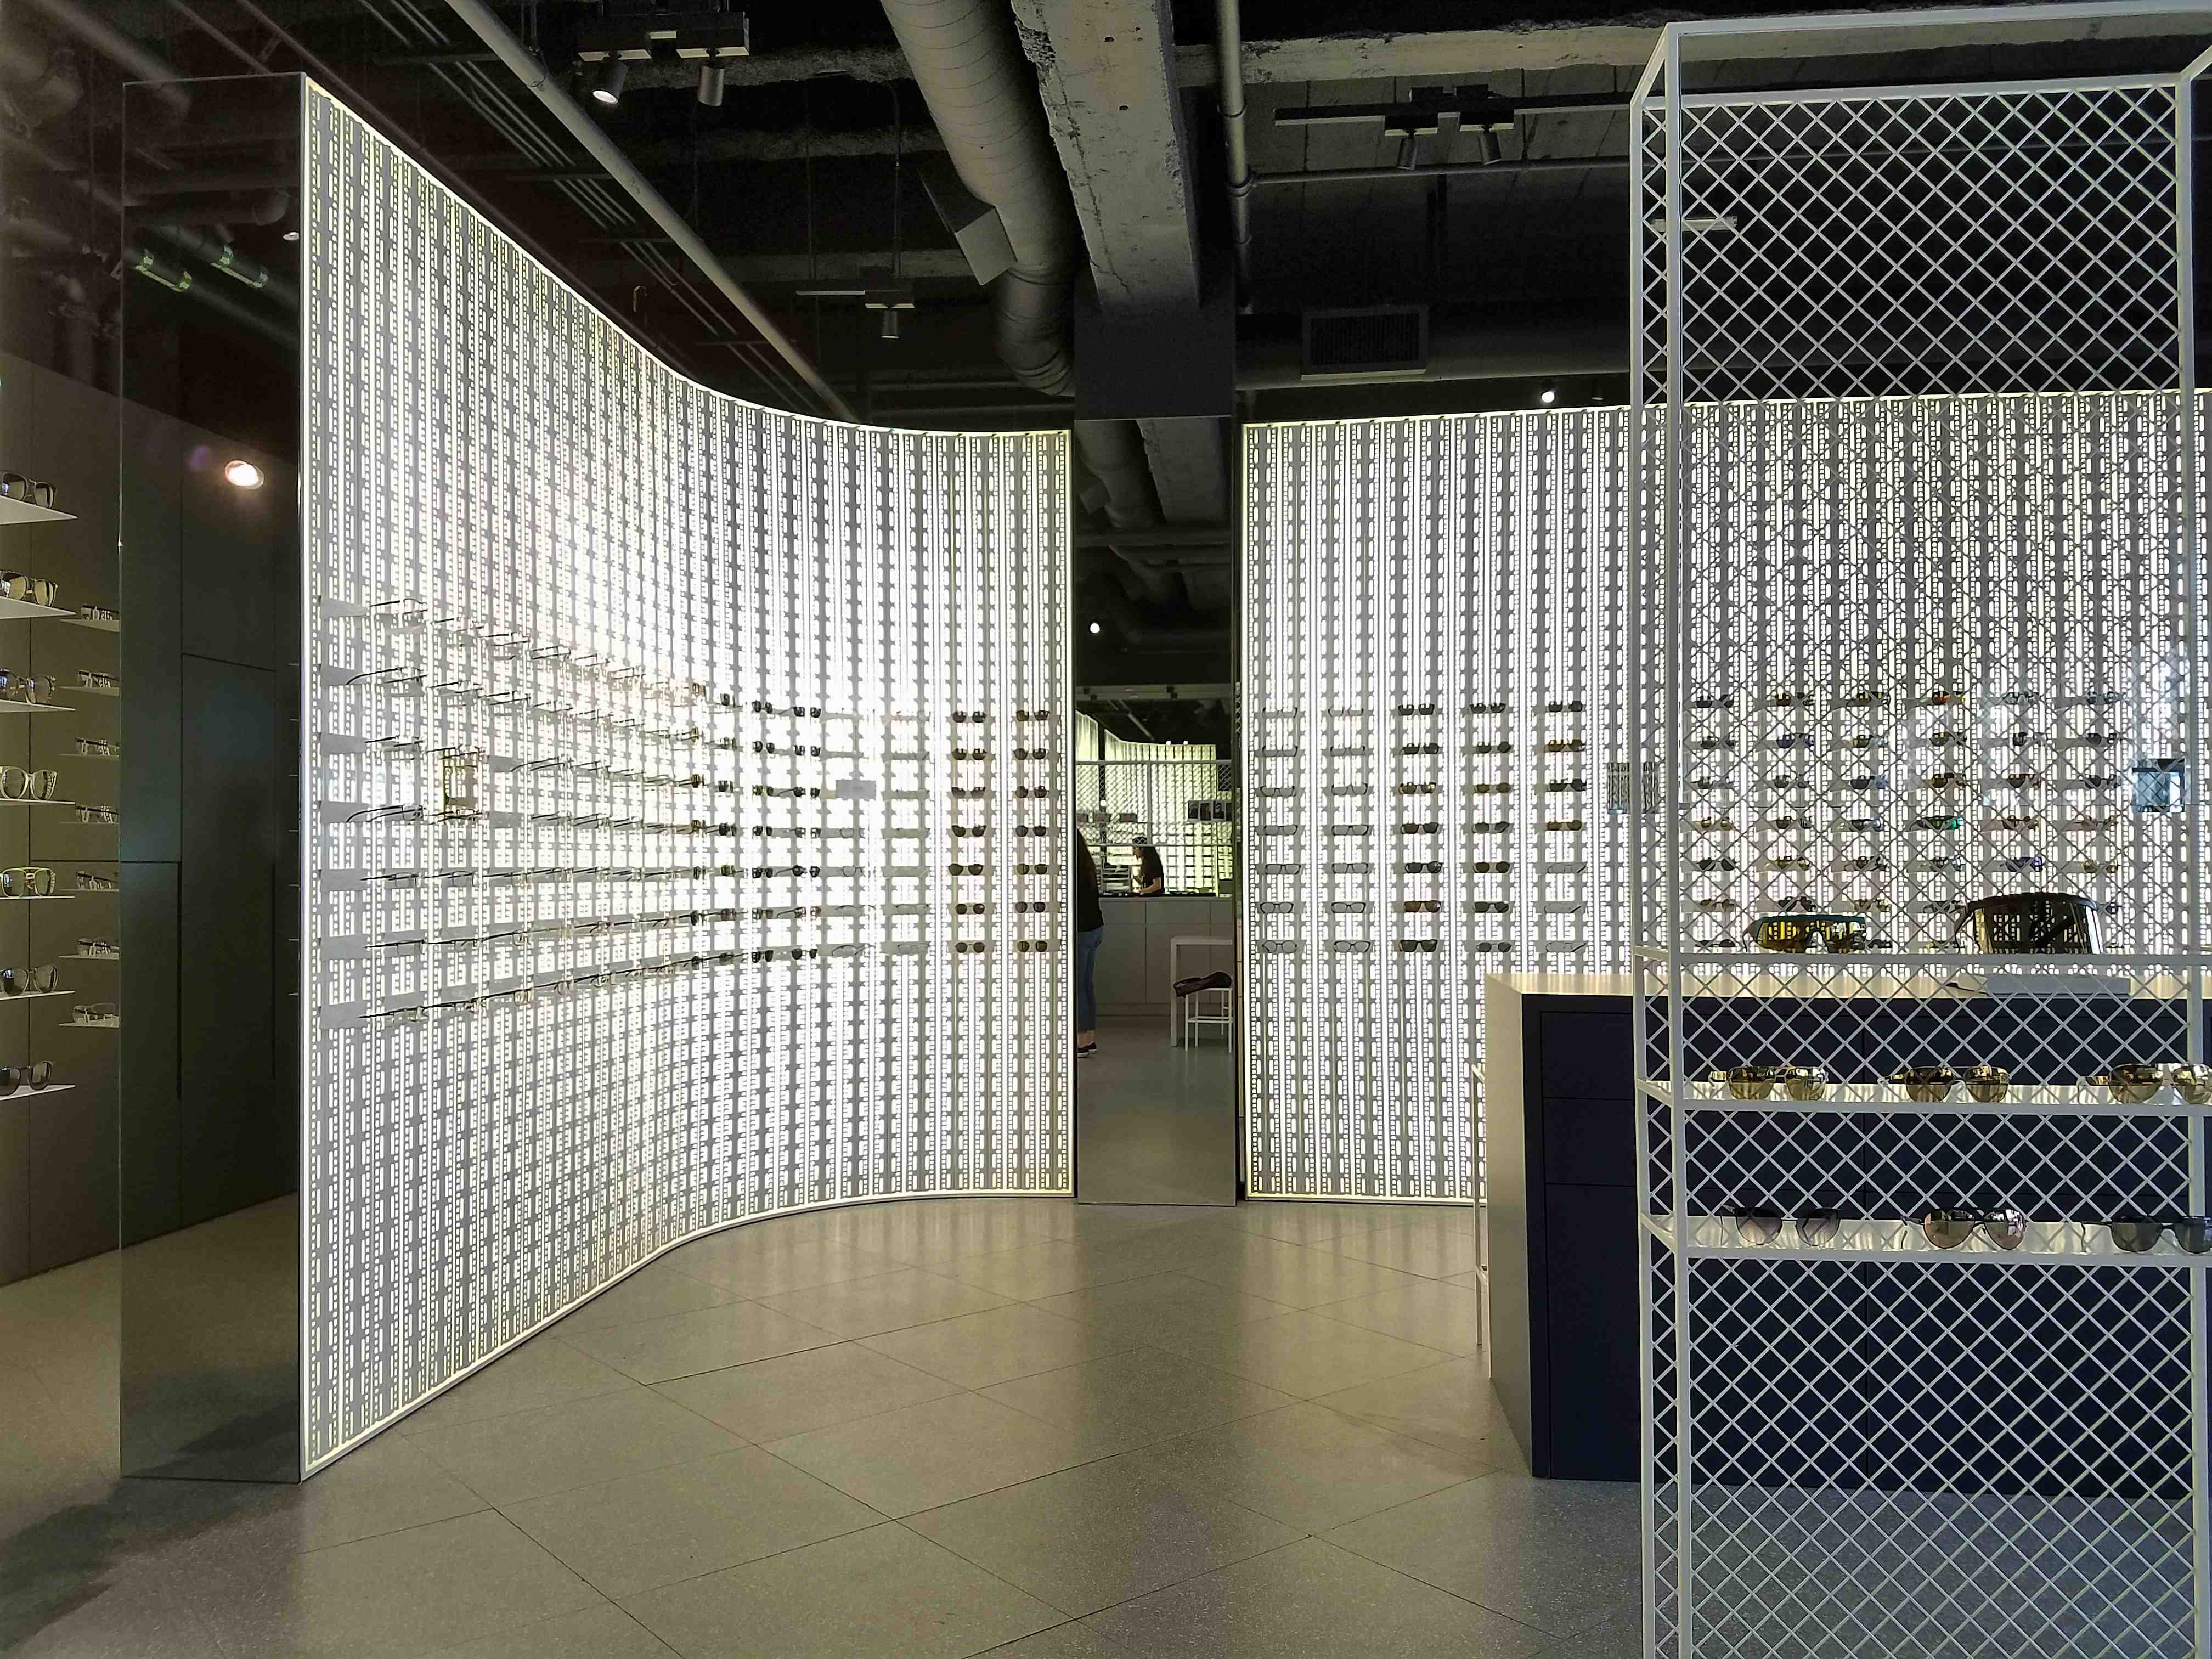 The high-end Berlin eyewear brand MyKita has opened its first West Coast store here in Downtown LA at 9th/Broadway